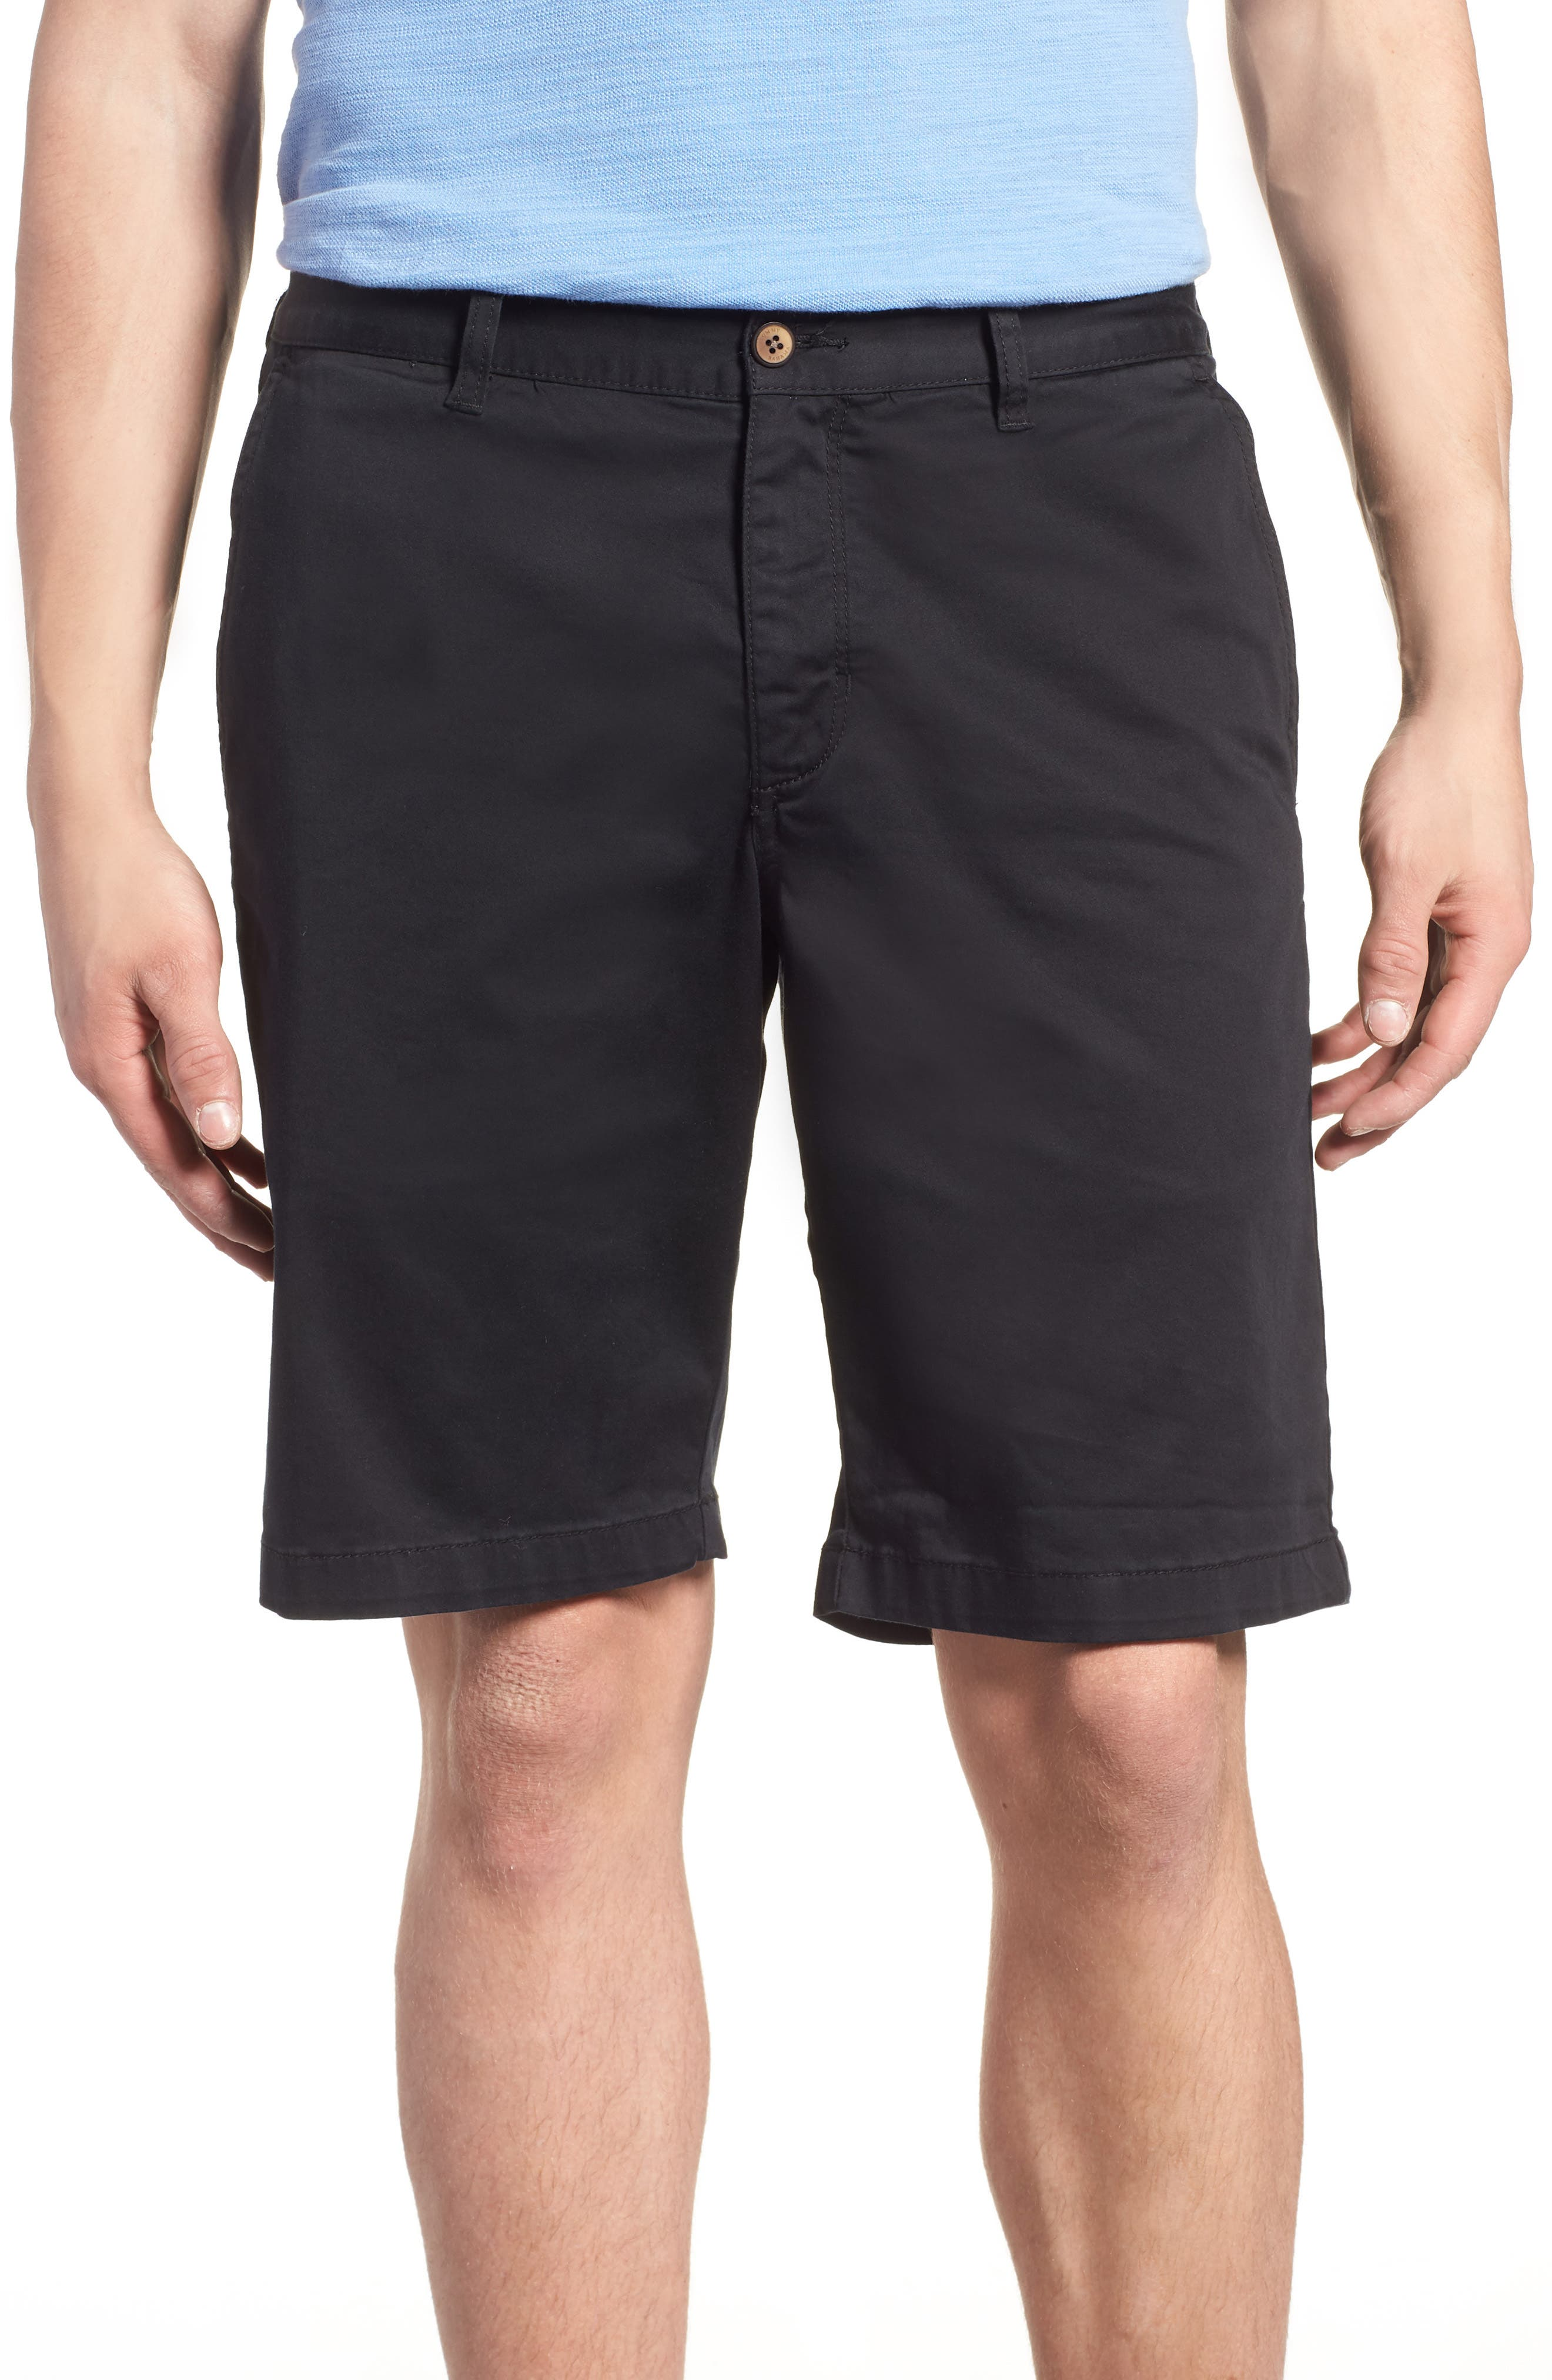 Boracay Chino Shorts,                             Main thumbnail 1, color,                             001